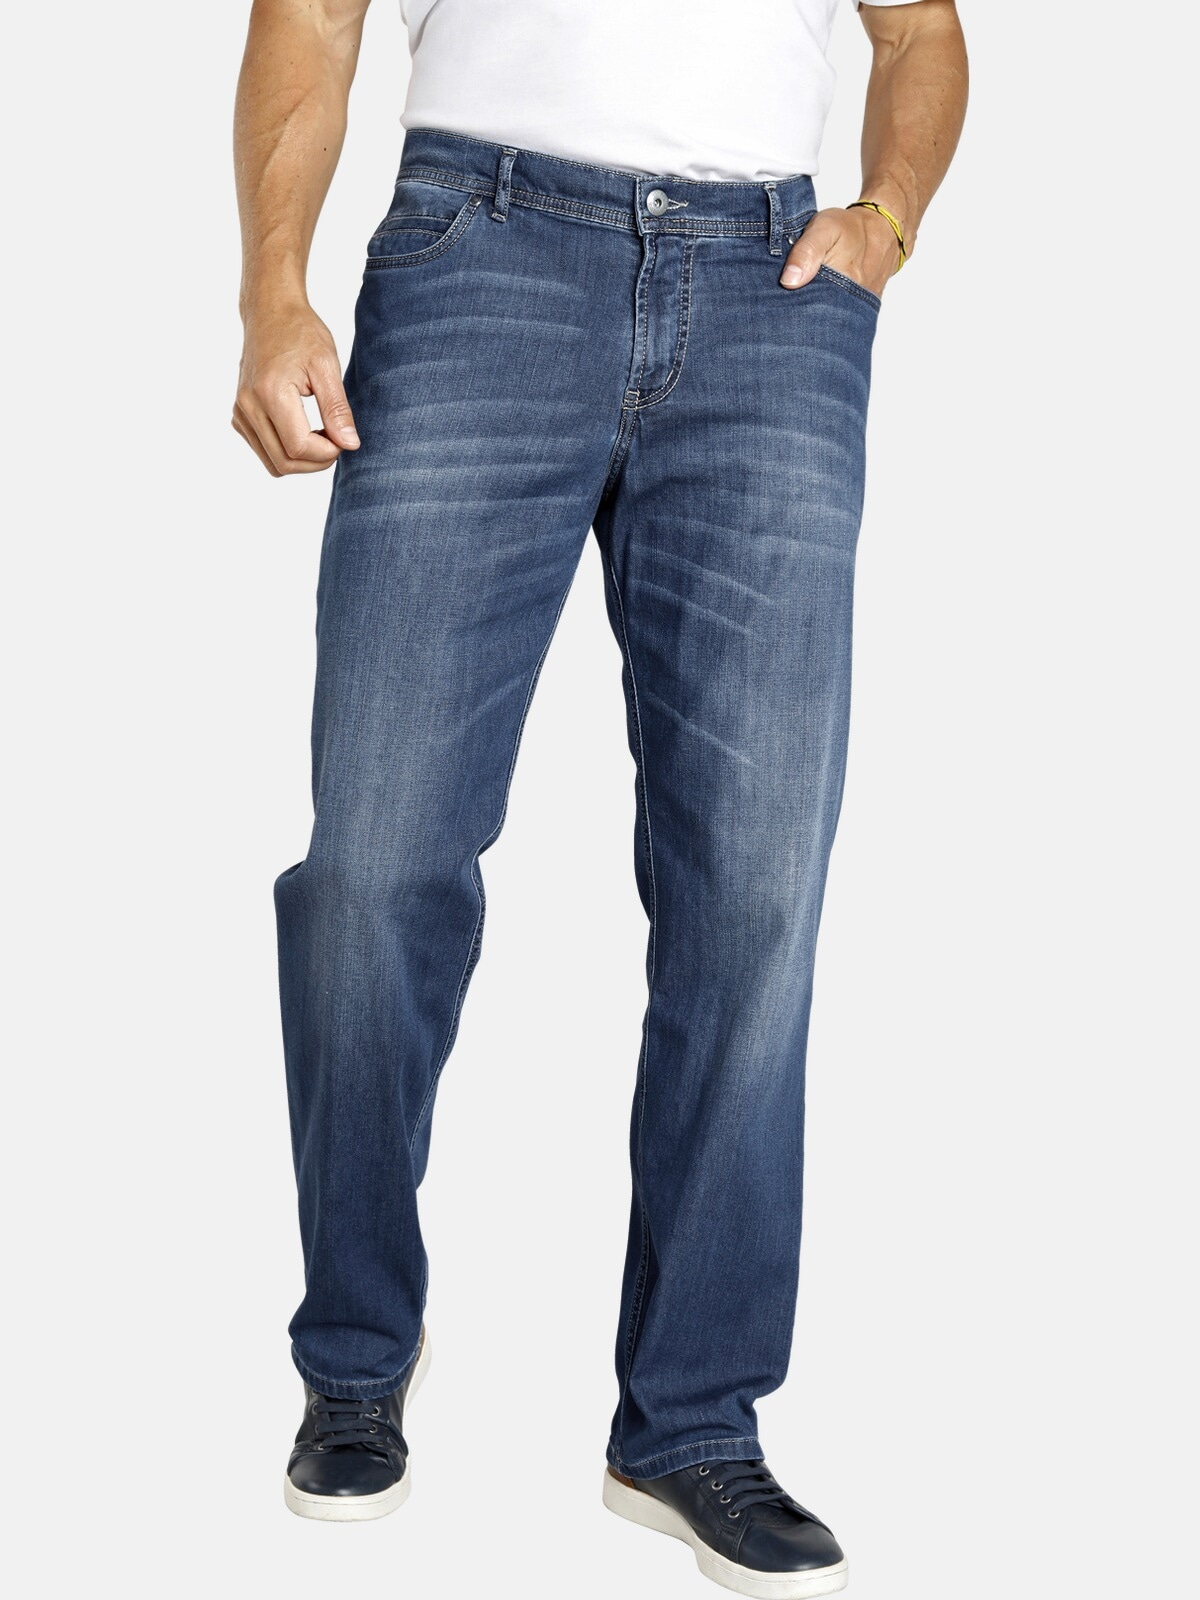 Jan Vanderstorm 5-Pocket-Jeans »WICKI« von Jan Vanderstorm